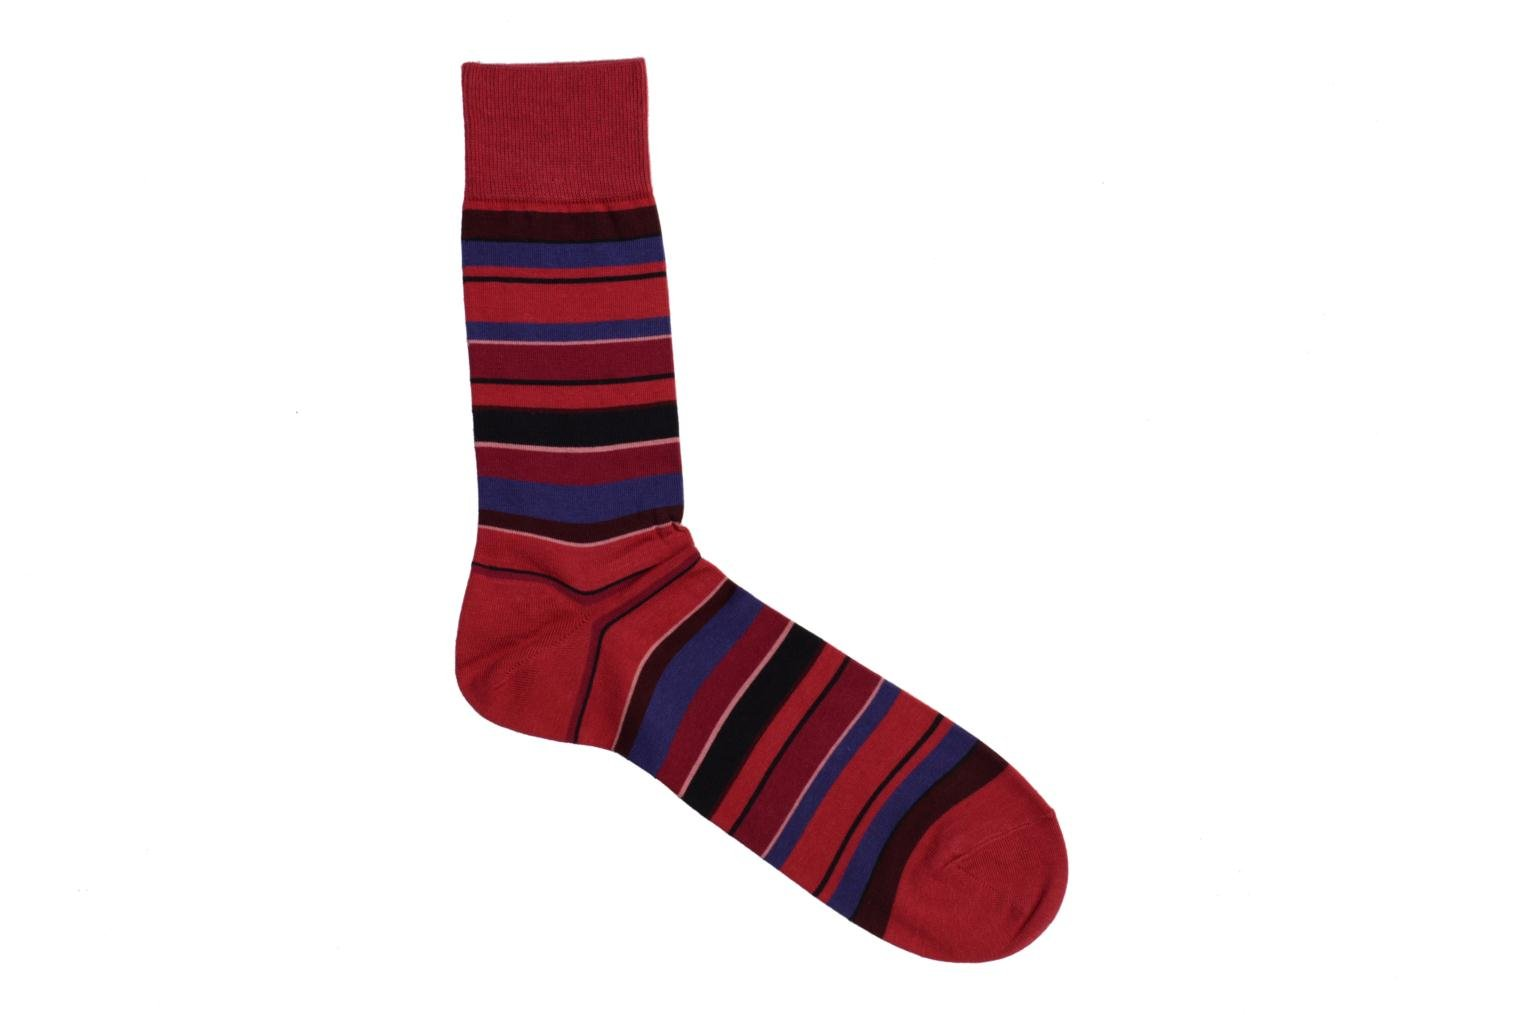 Chaussettes NEW STRIPE 8030 rouge